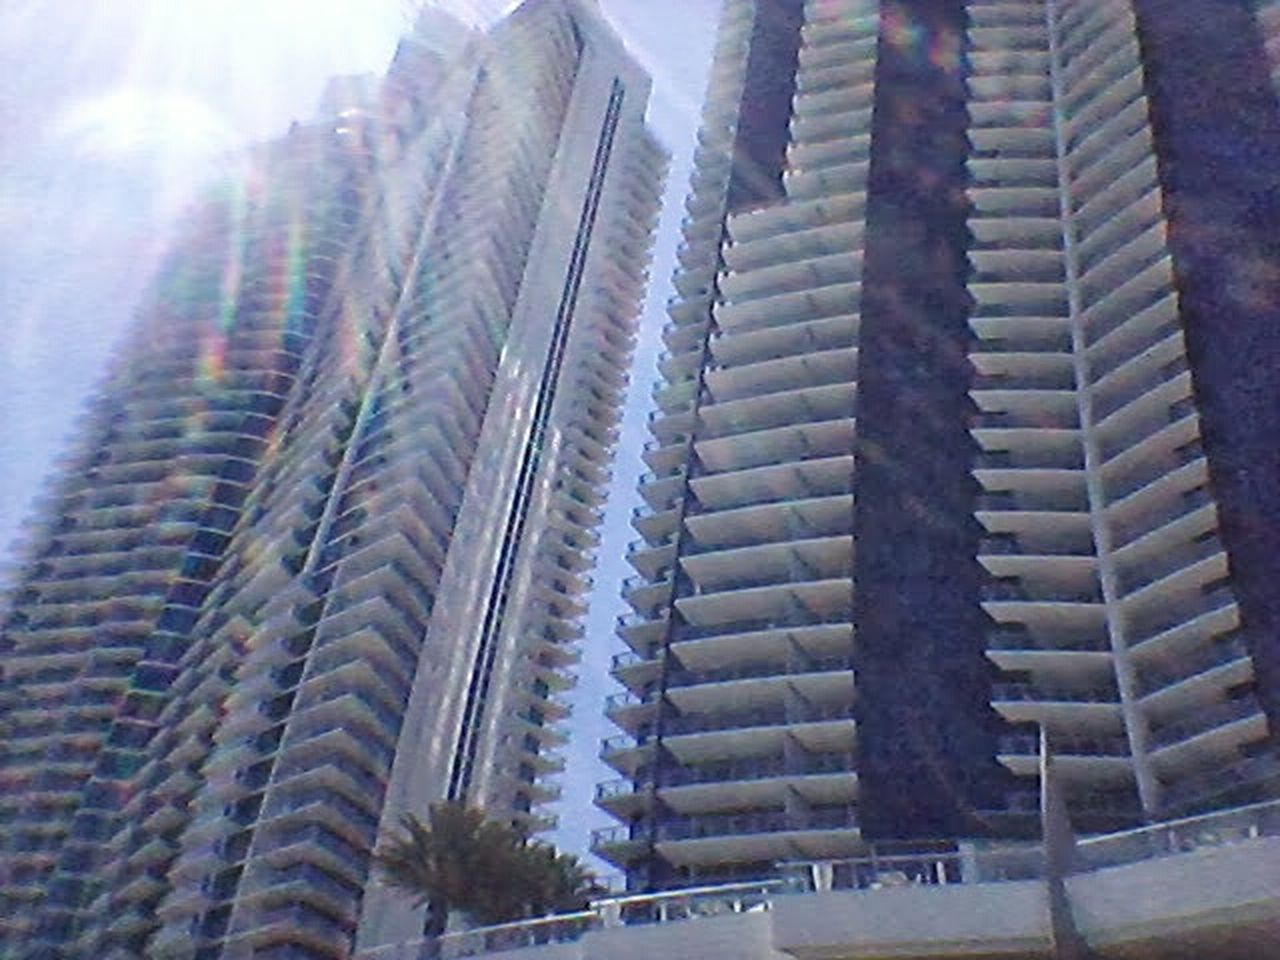 Amazing Architecture North Miami Beach Sky Scrapers Florida Summer2015 Cityscapes